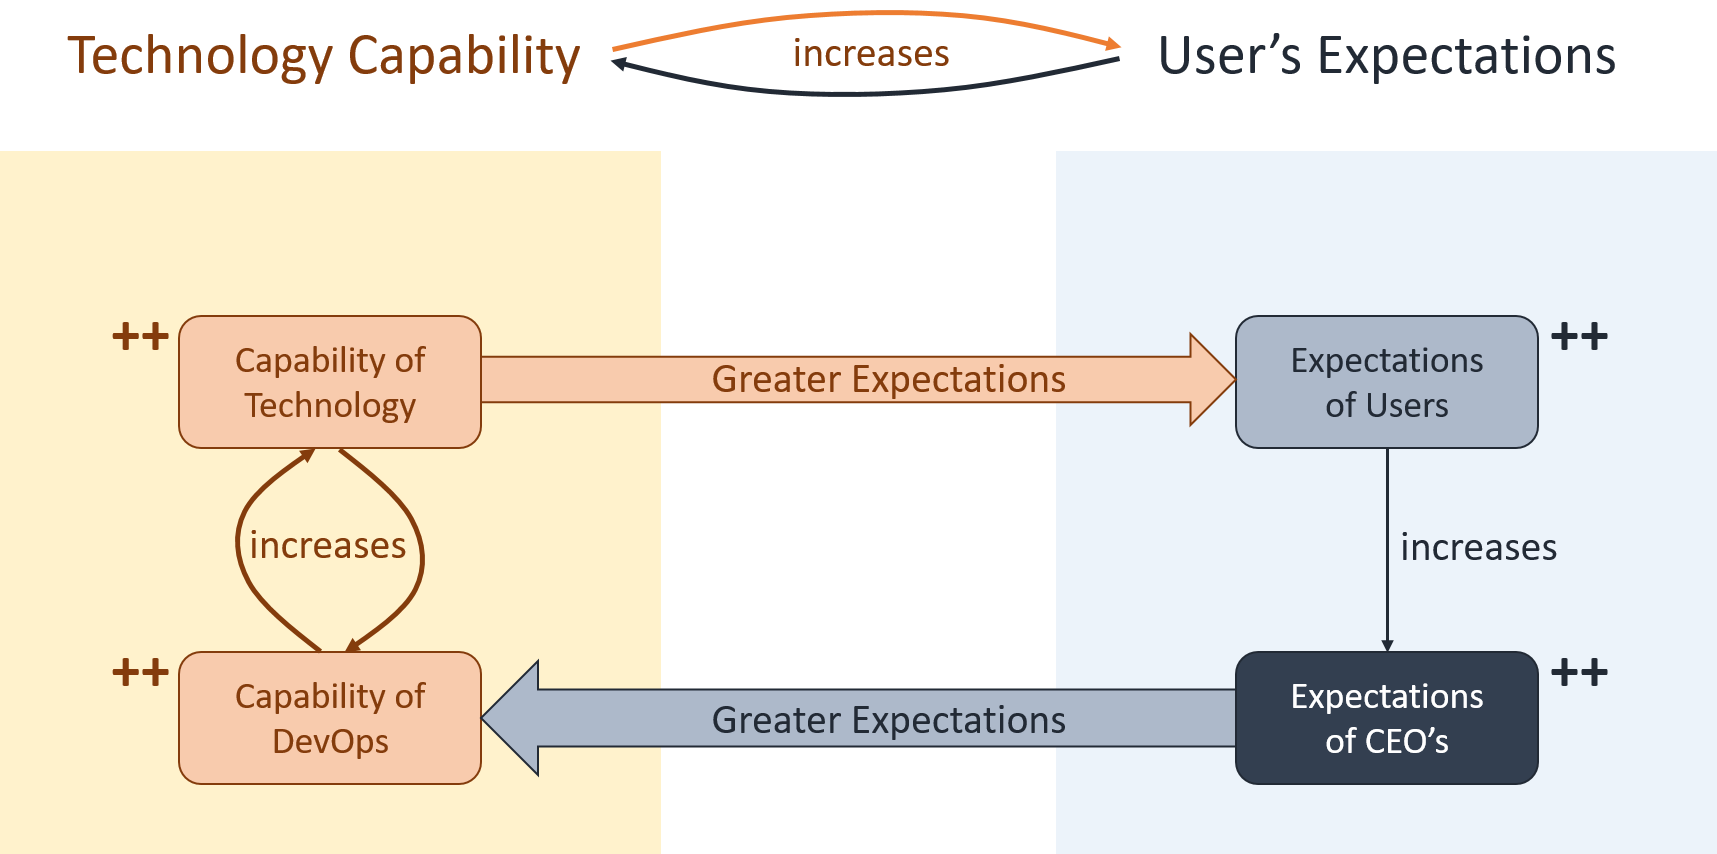 Figure 1. The Feedback loop between Technology Capability and DevOps Capability leads to increased User Expectations, finally leading to CEO's putting greater pressure on their internal DevOps teams to go further and faster in a never-ending spiral